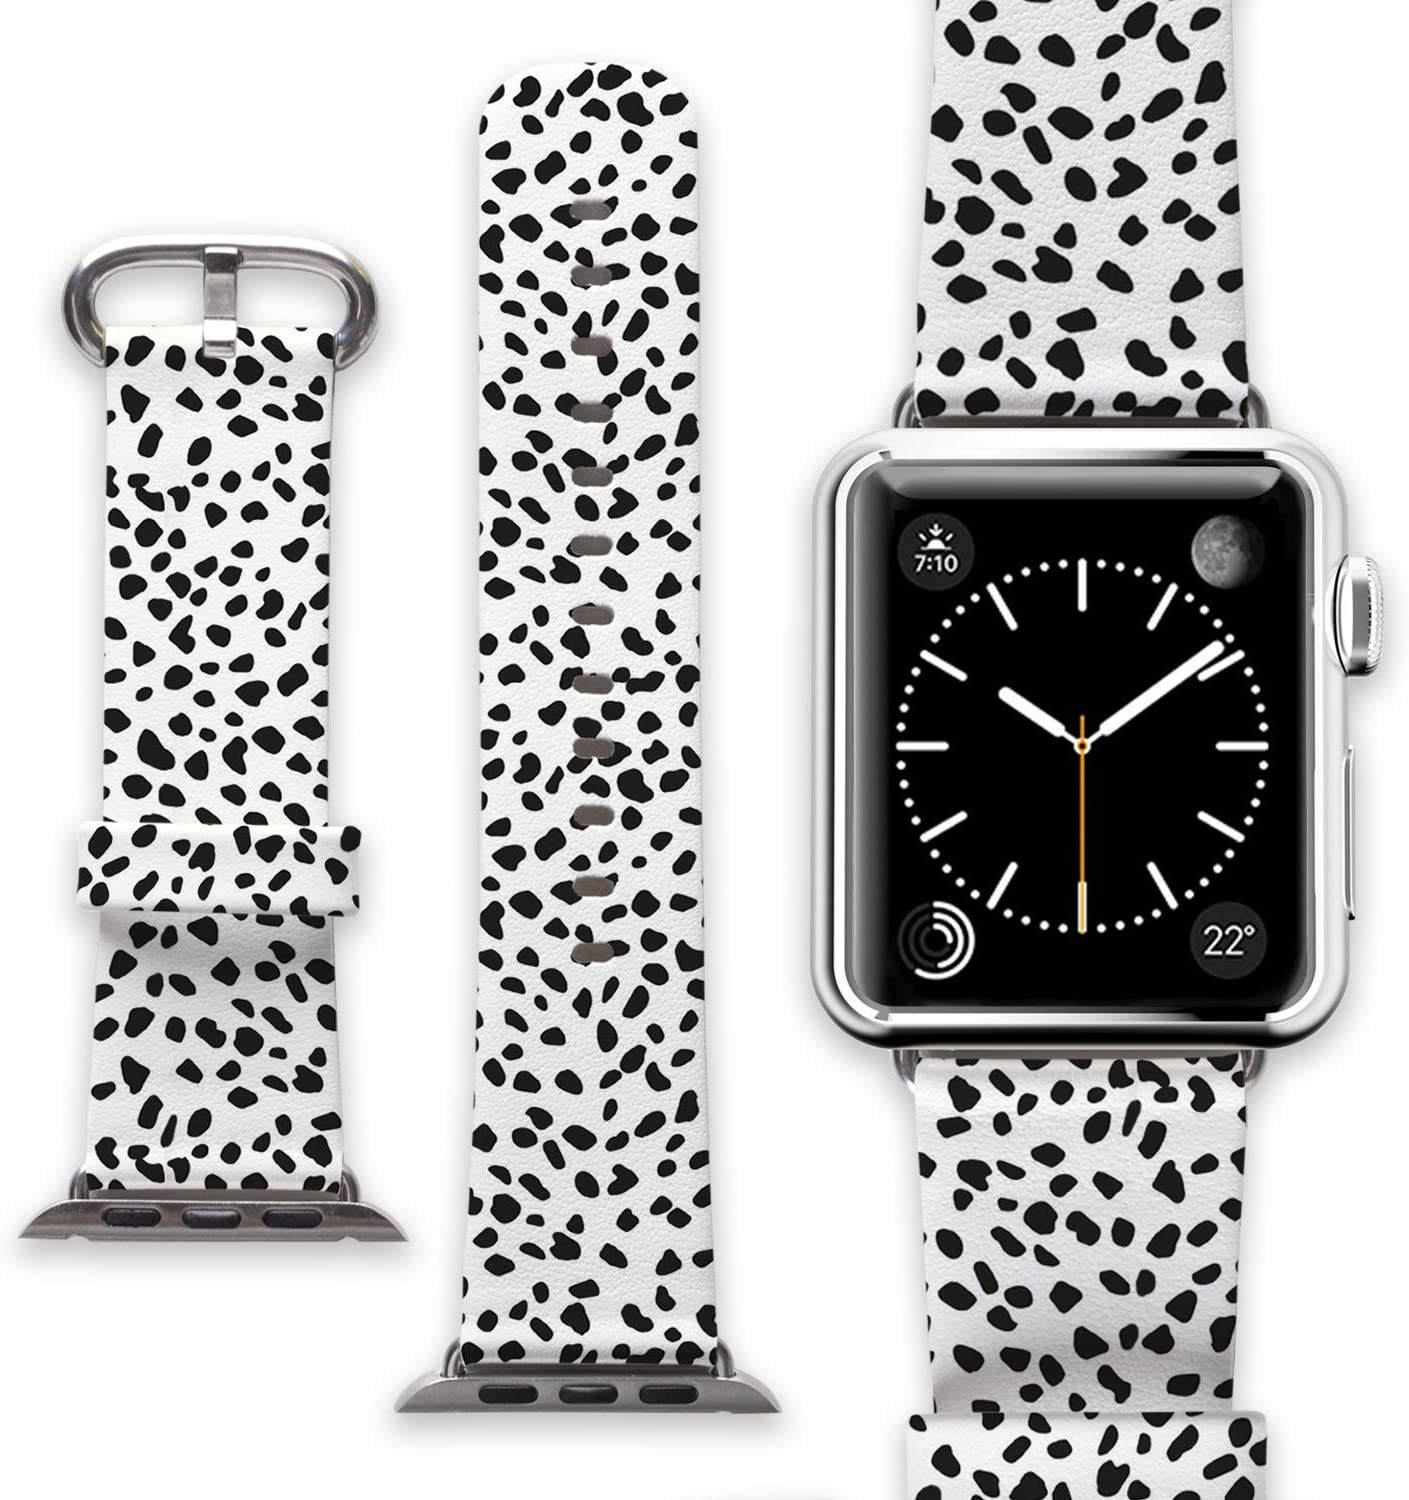 Leather Watchband for Apple iWatch 38mm 40mm Series 1 2 3 4 Replacement Band Women Men Strap Band White Black Cow Dots